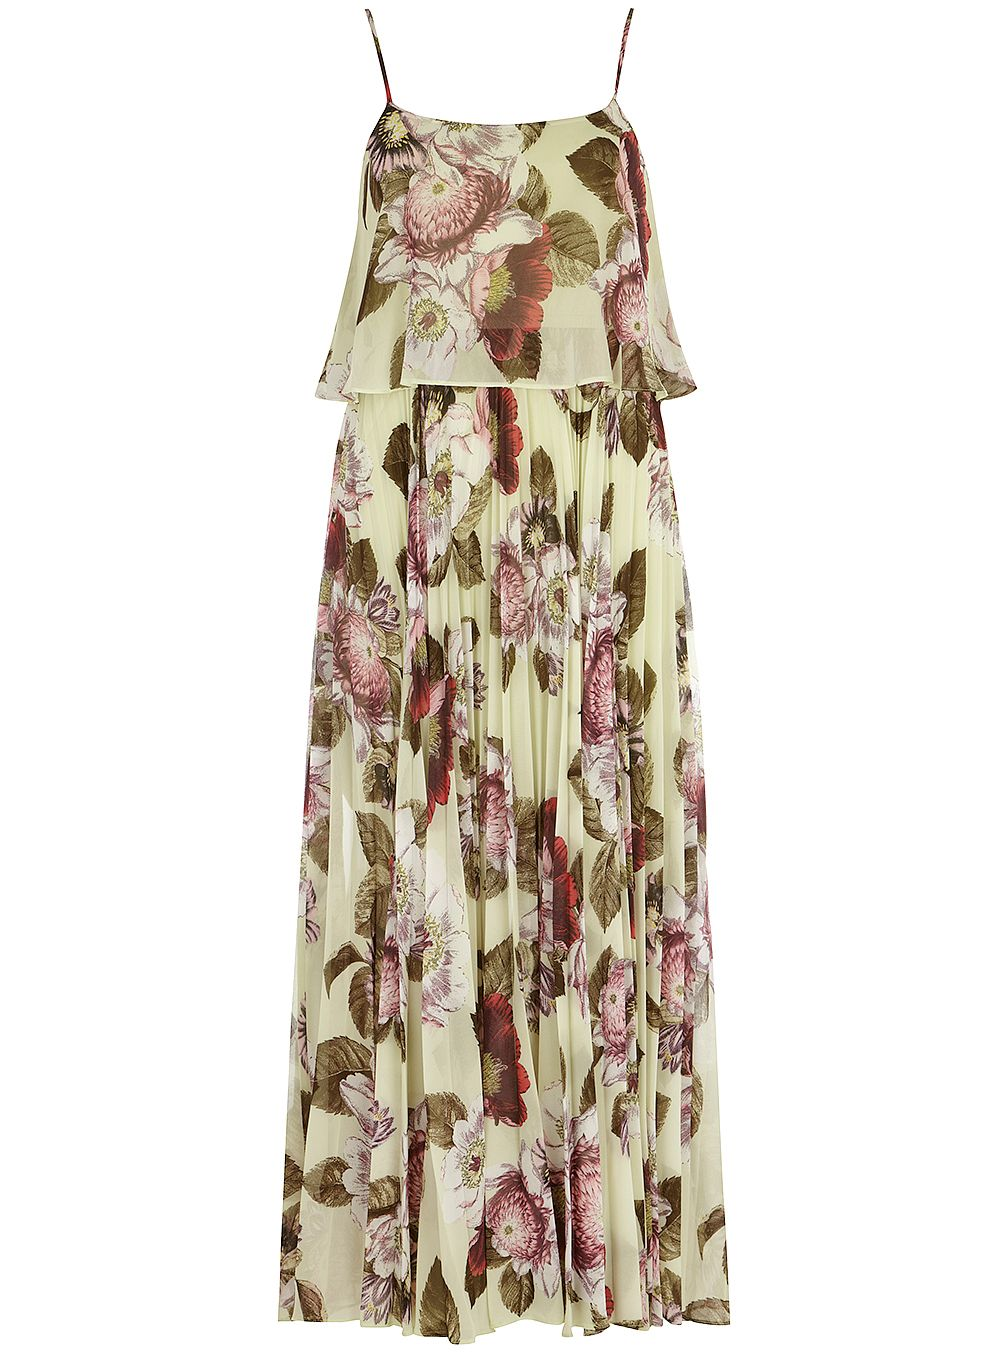 Luxe Botanic Print Maxi Dress